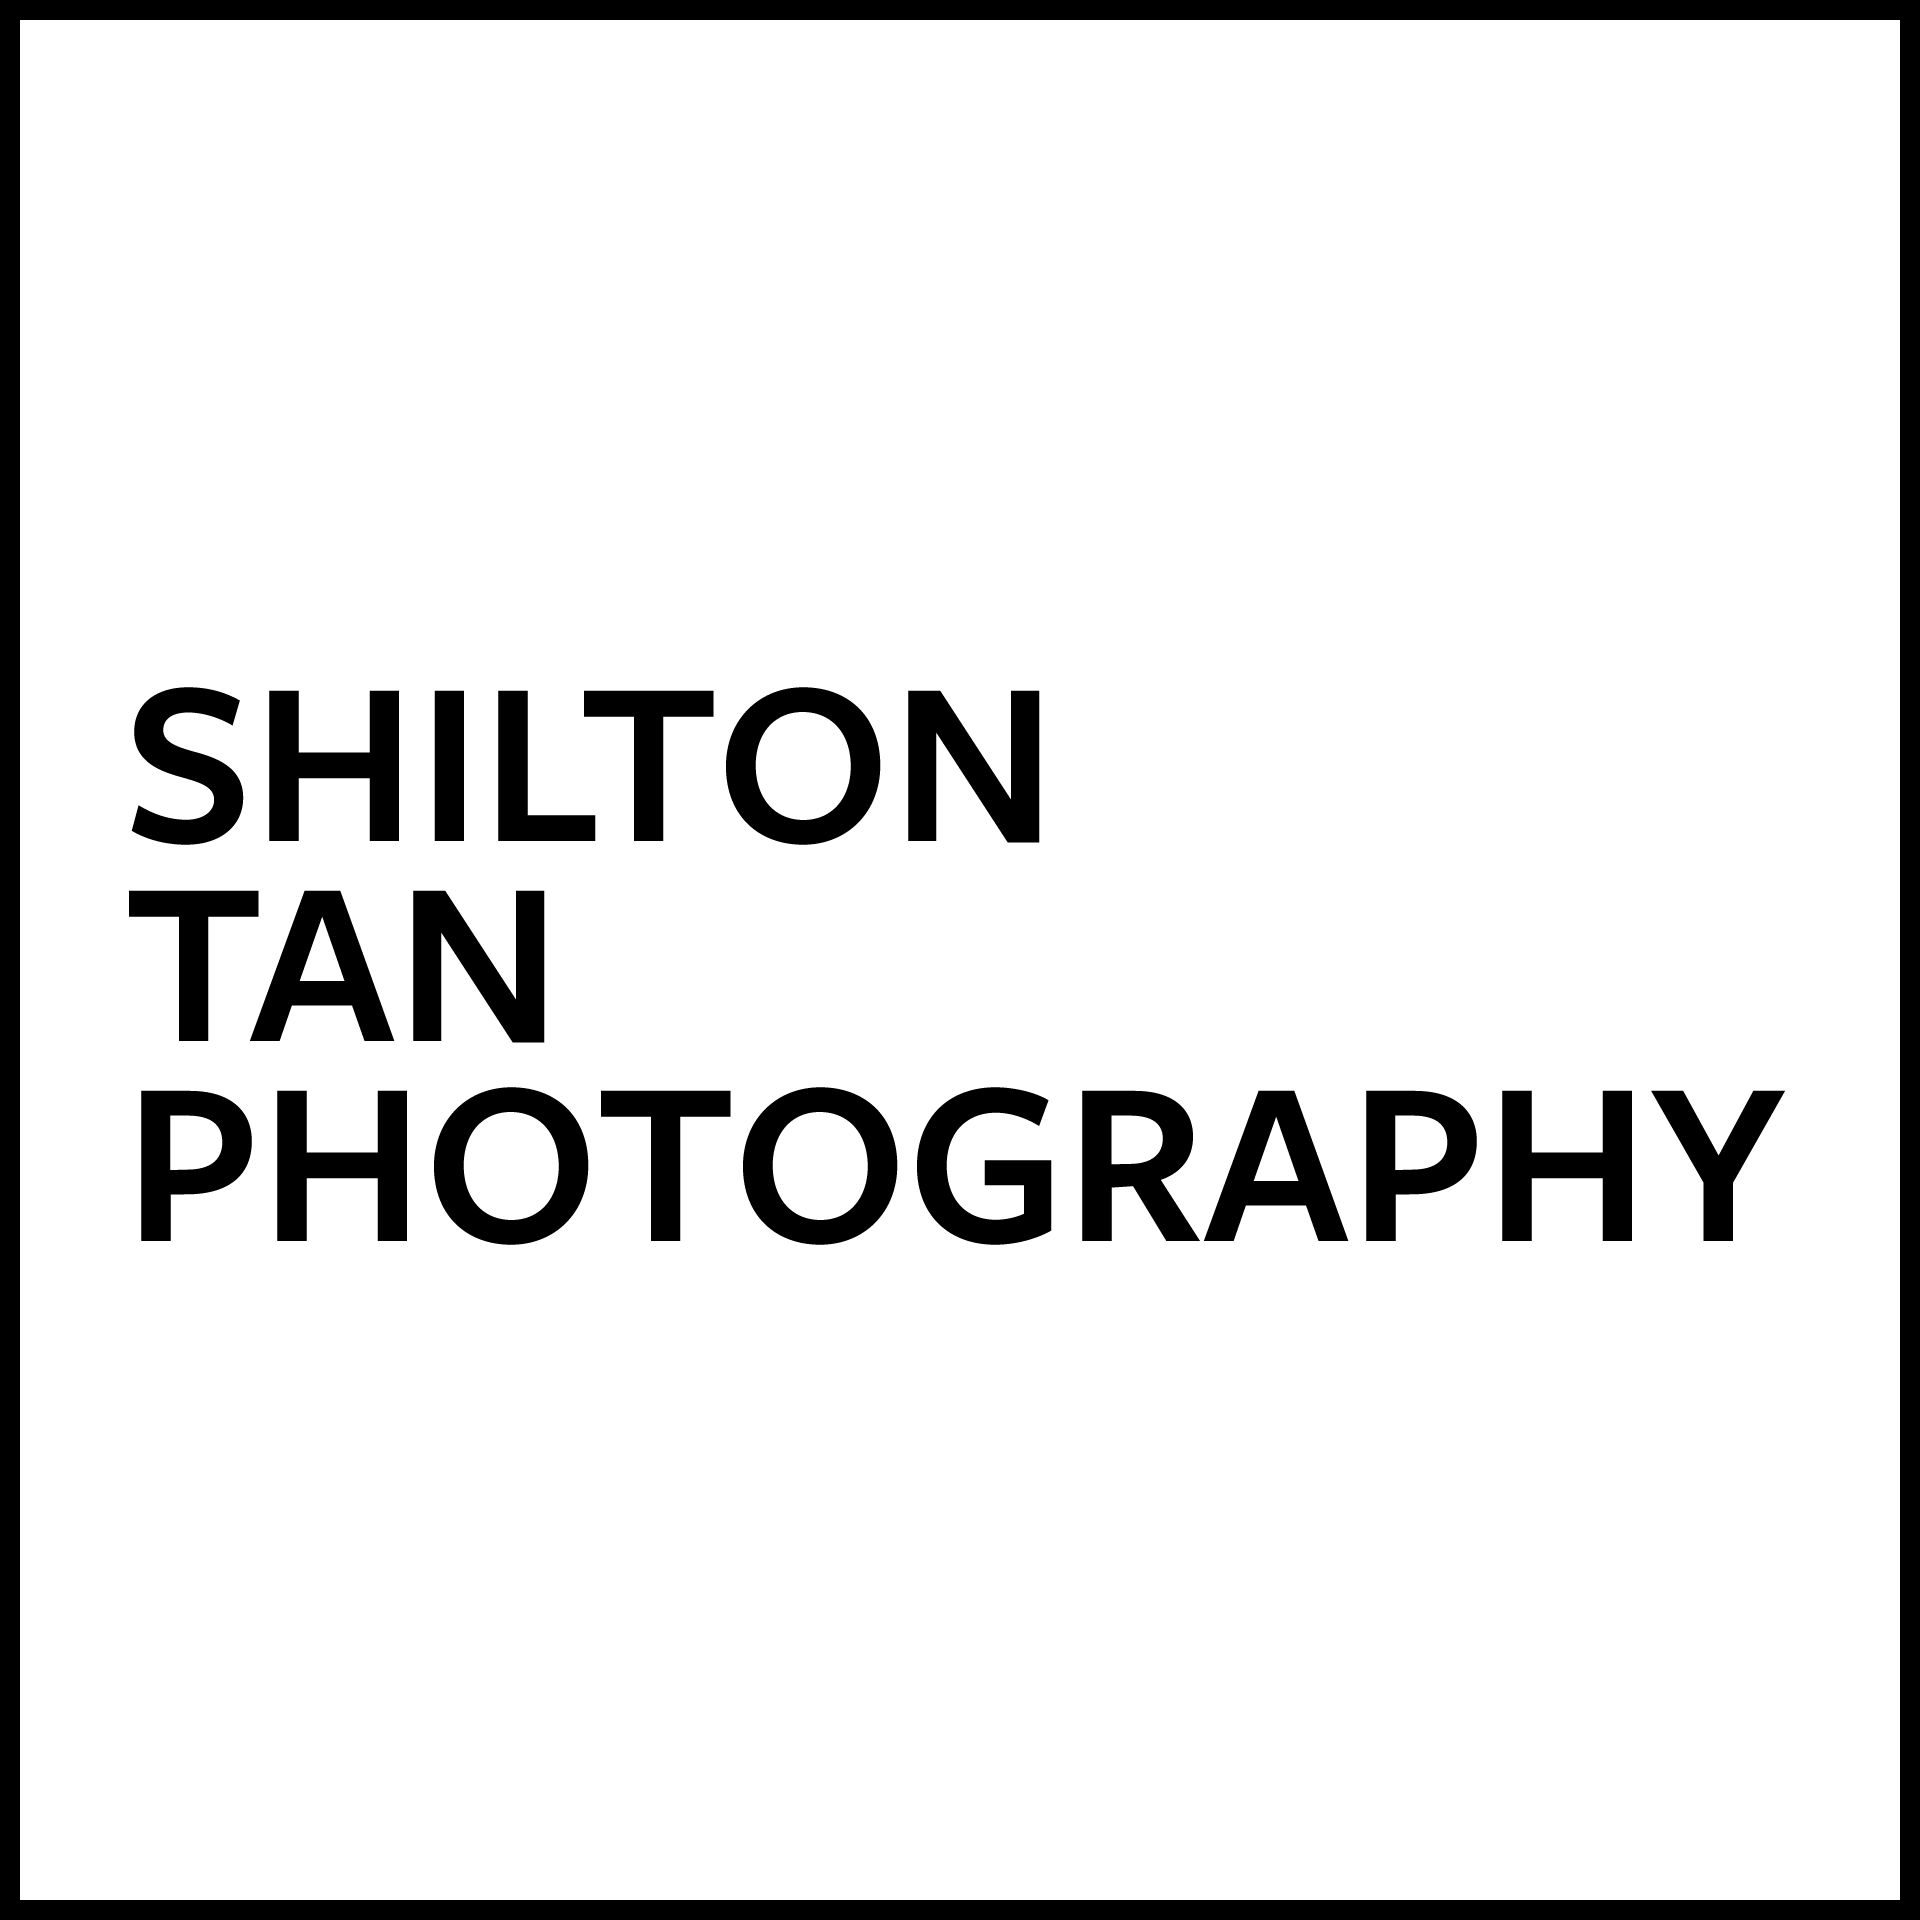 Shilton Tan Photography